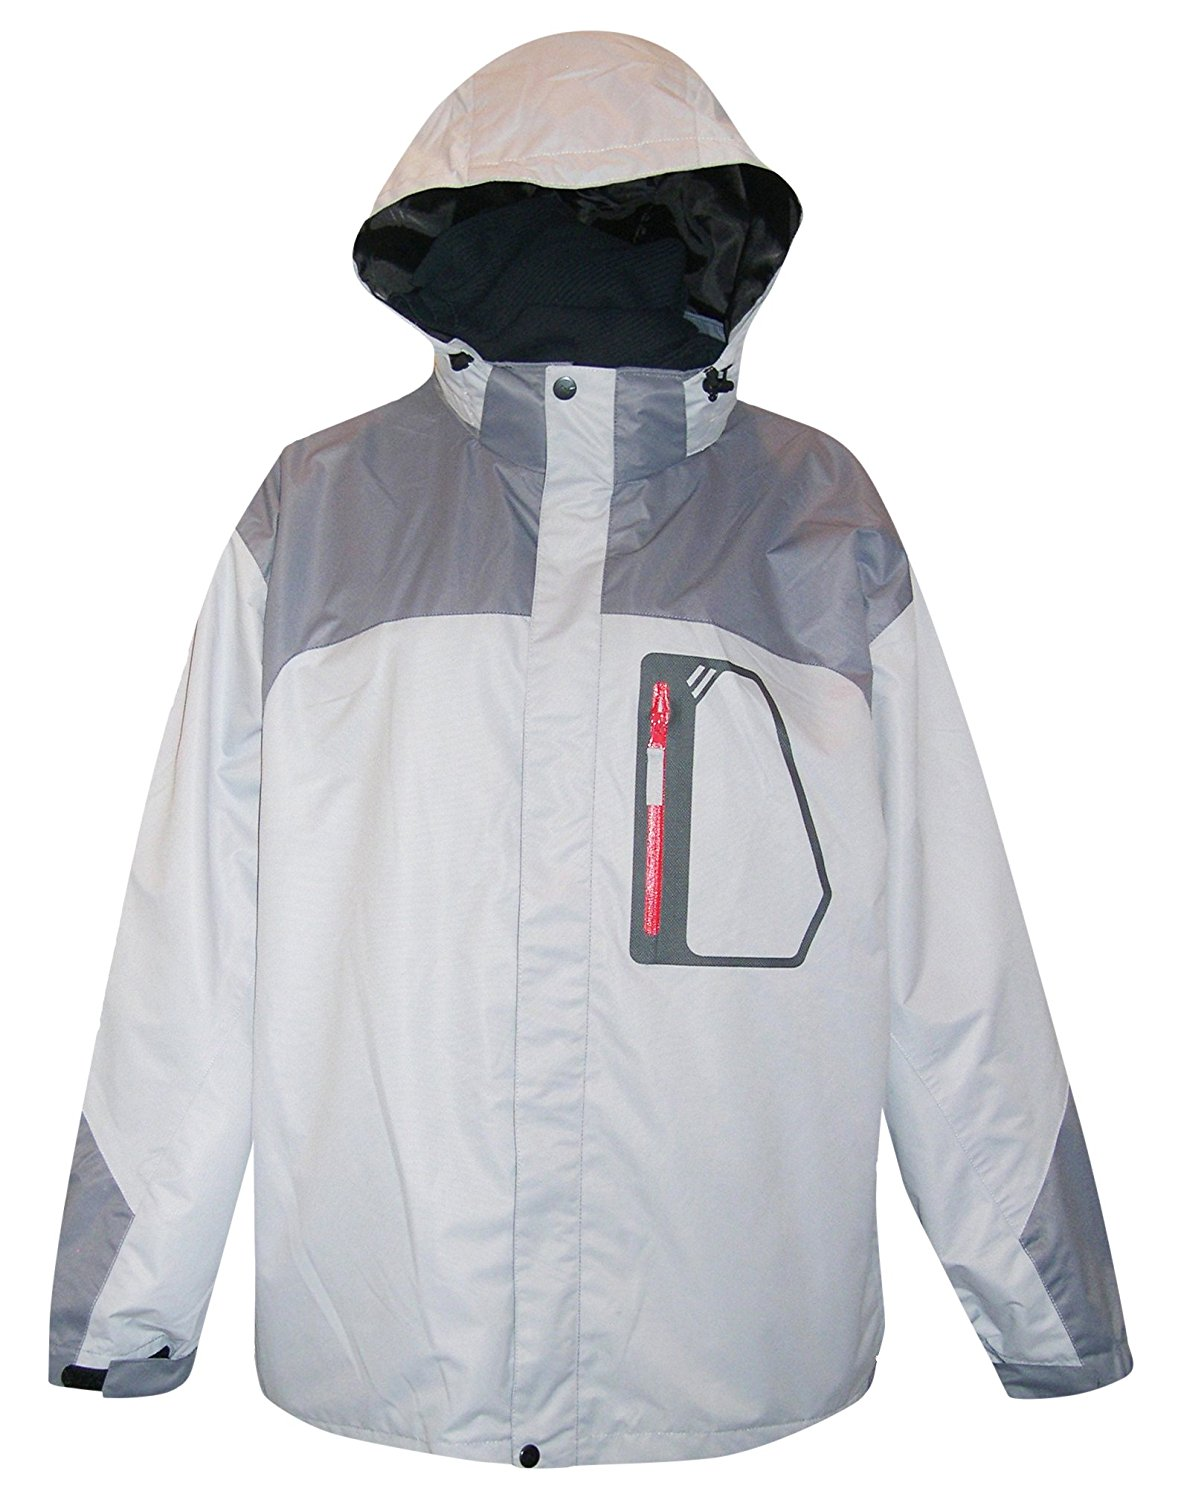 Pulse/Iceburg Mens 3in1 Ski Jacket Coat S-XL (Large, Charcoal/Grey/Red)